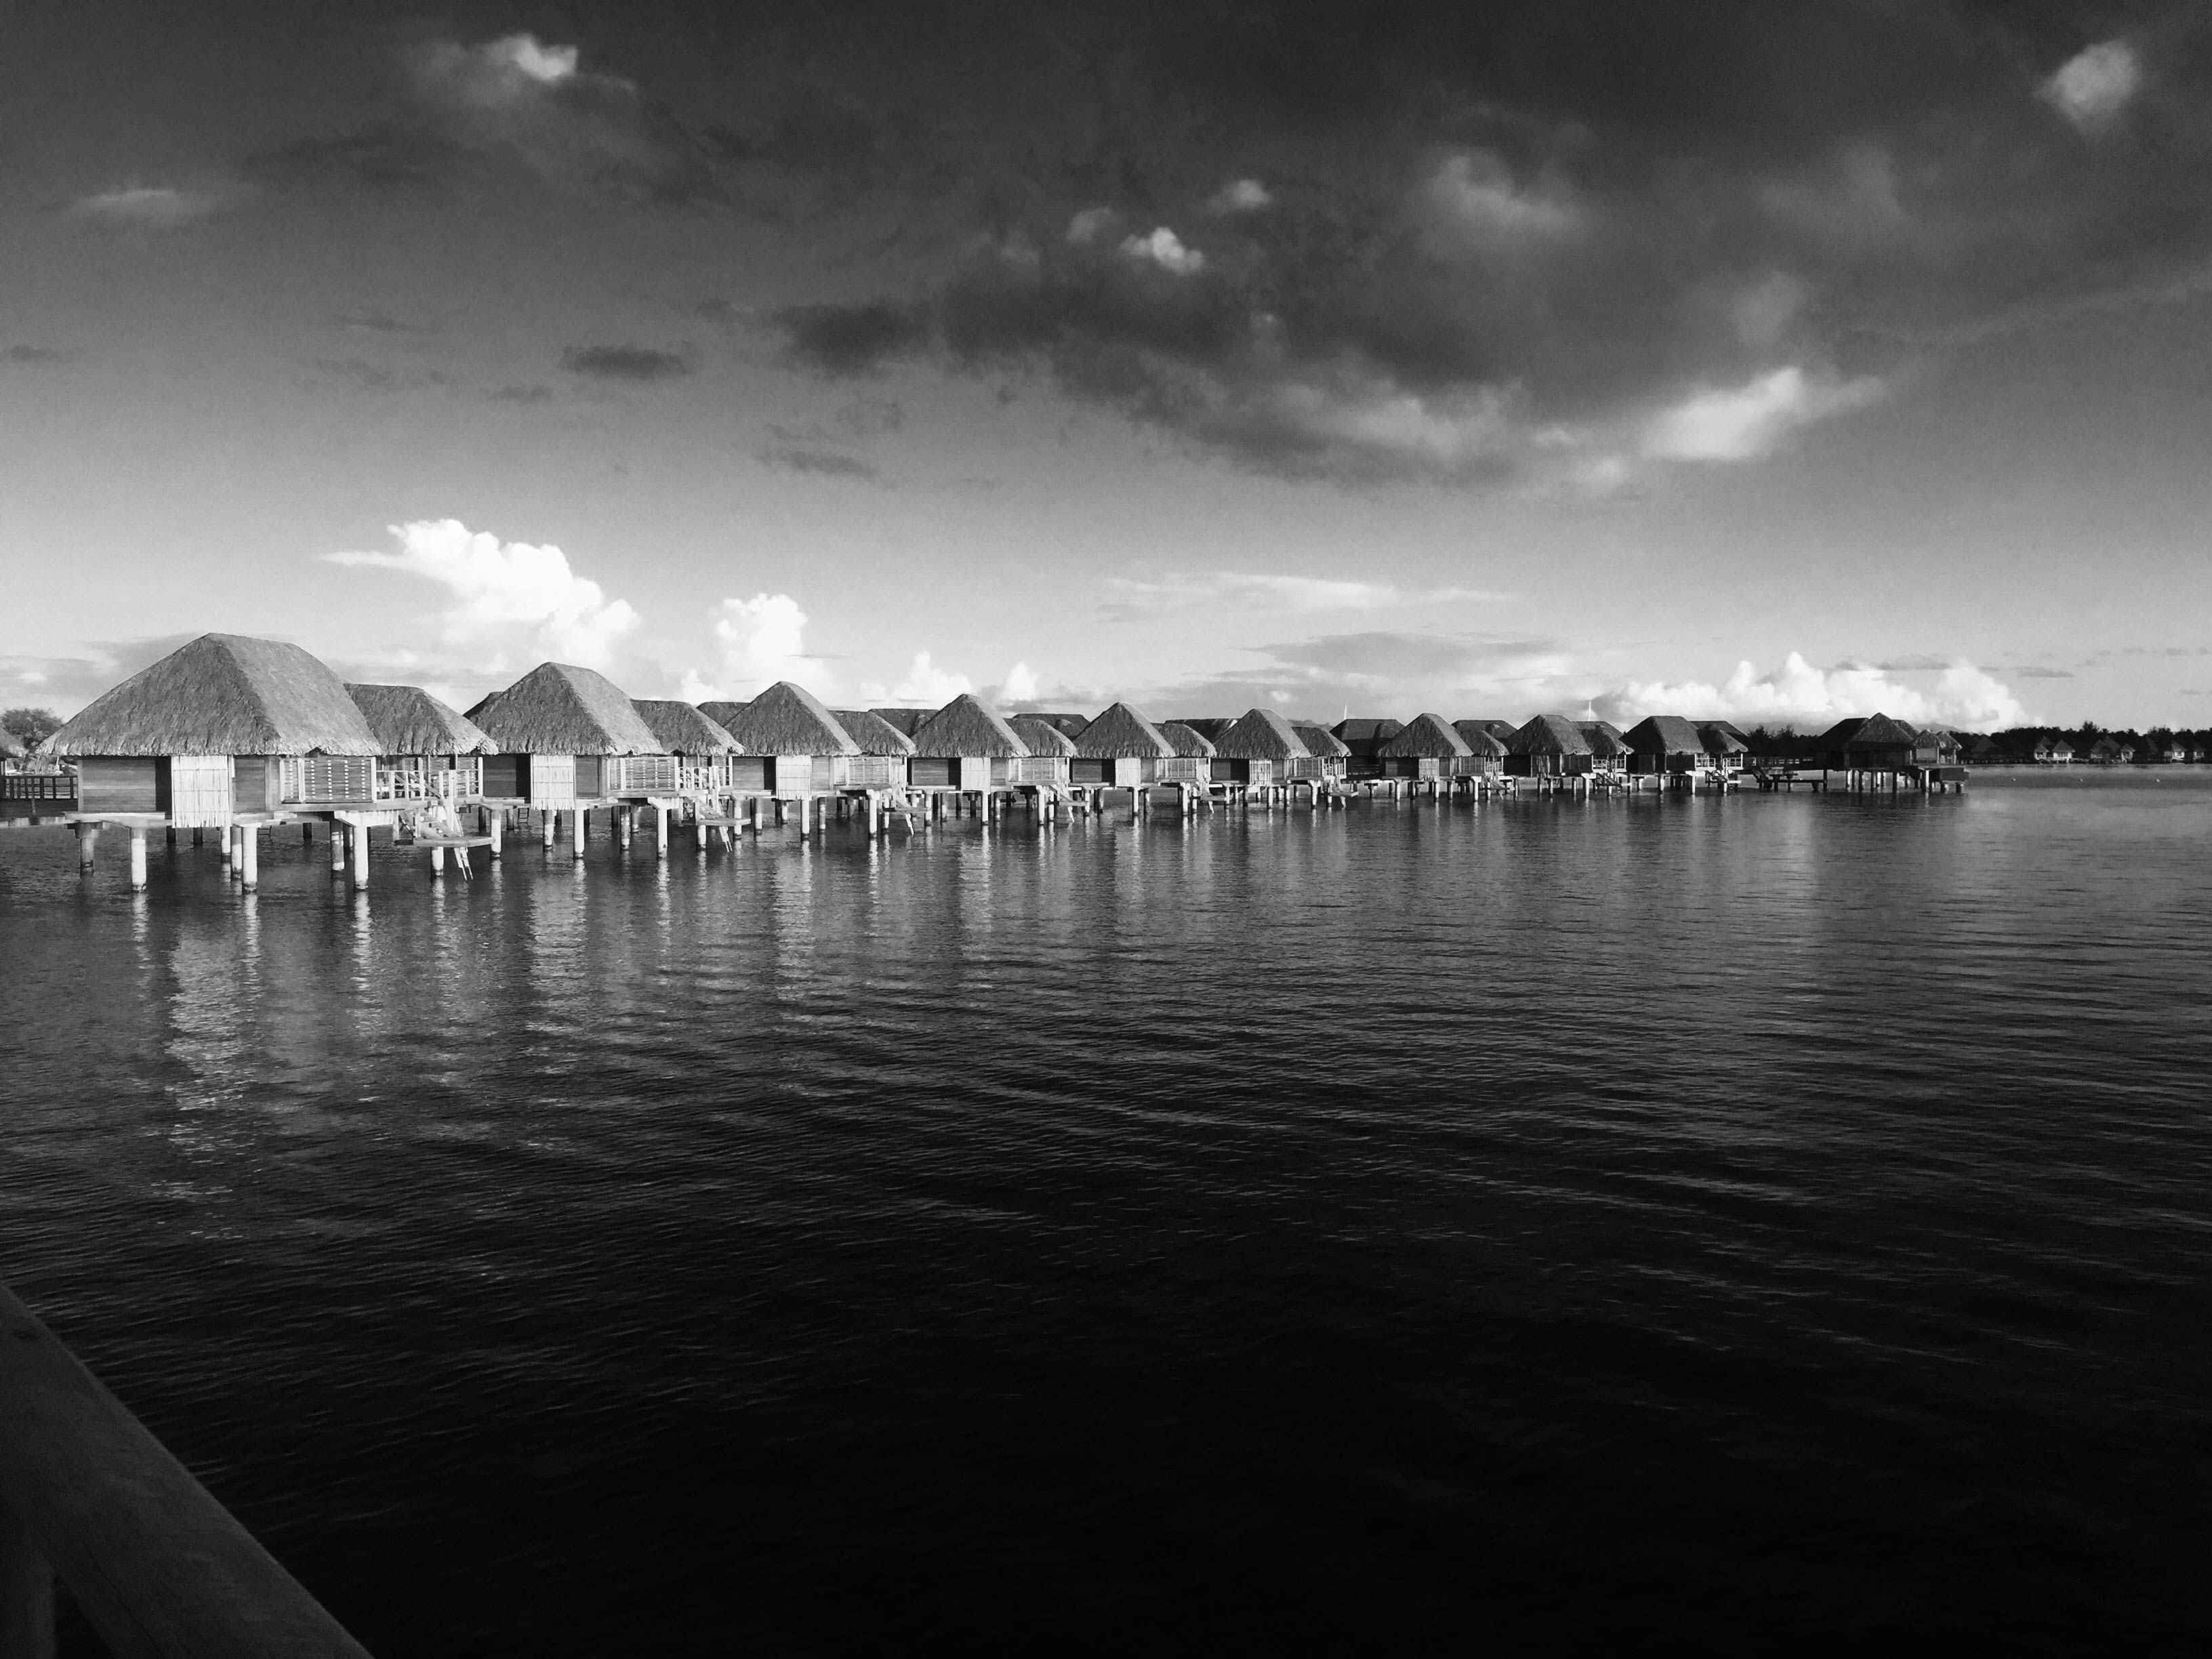 A black and white image of a line of villas expanding out across the ocean